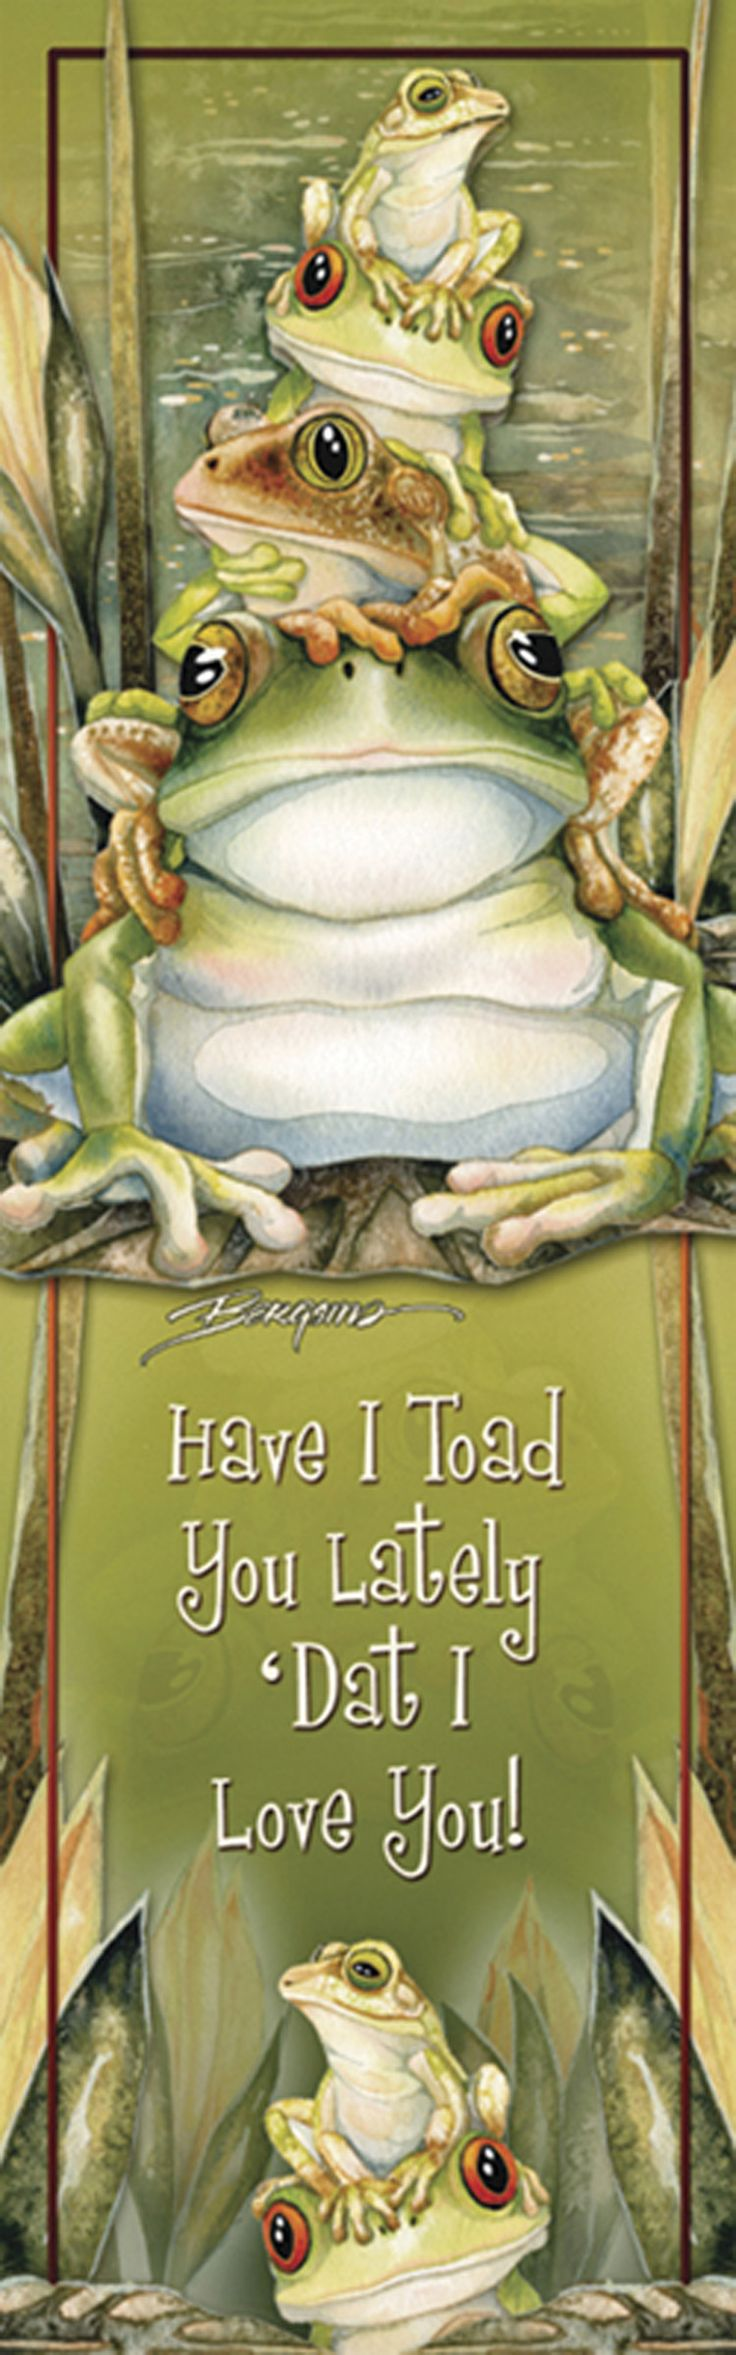 "<3 ""Have I Toad You Lately 'Dat I Love You!""  <3r by Jody Bergsma."